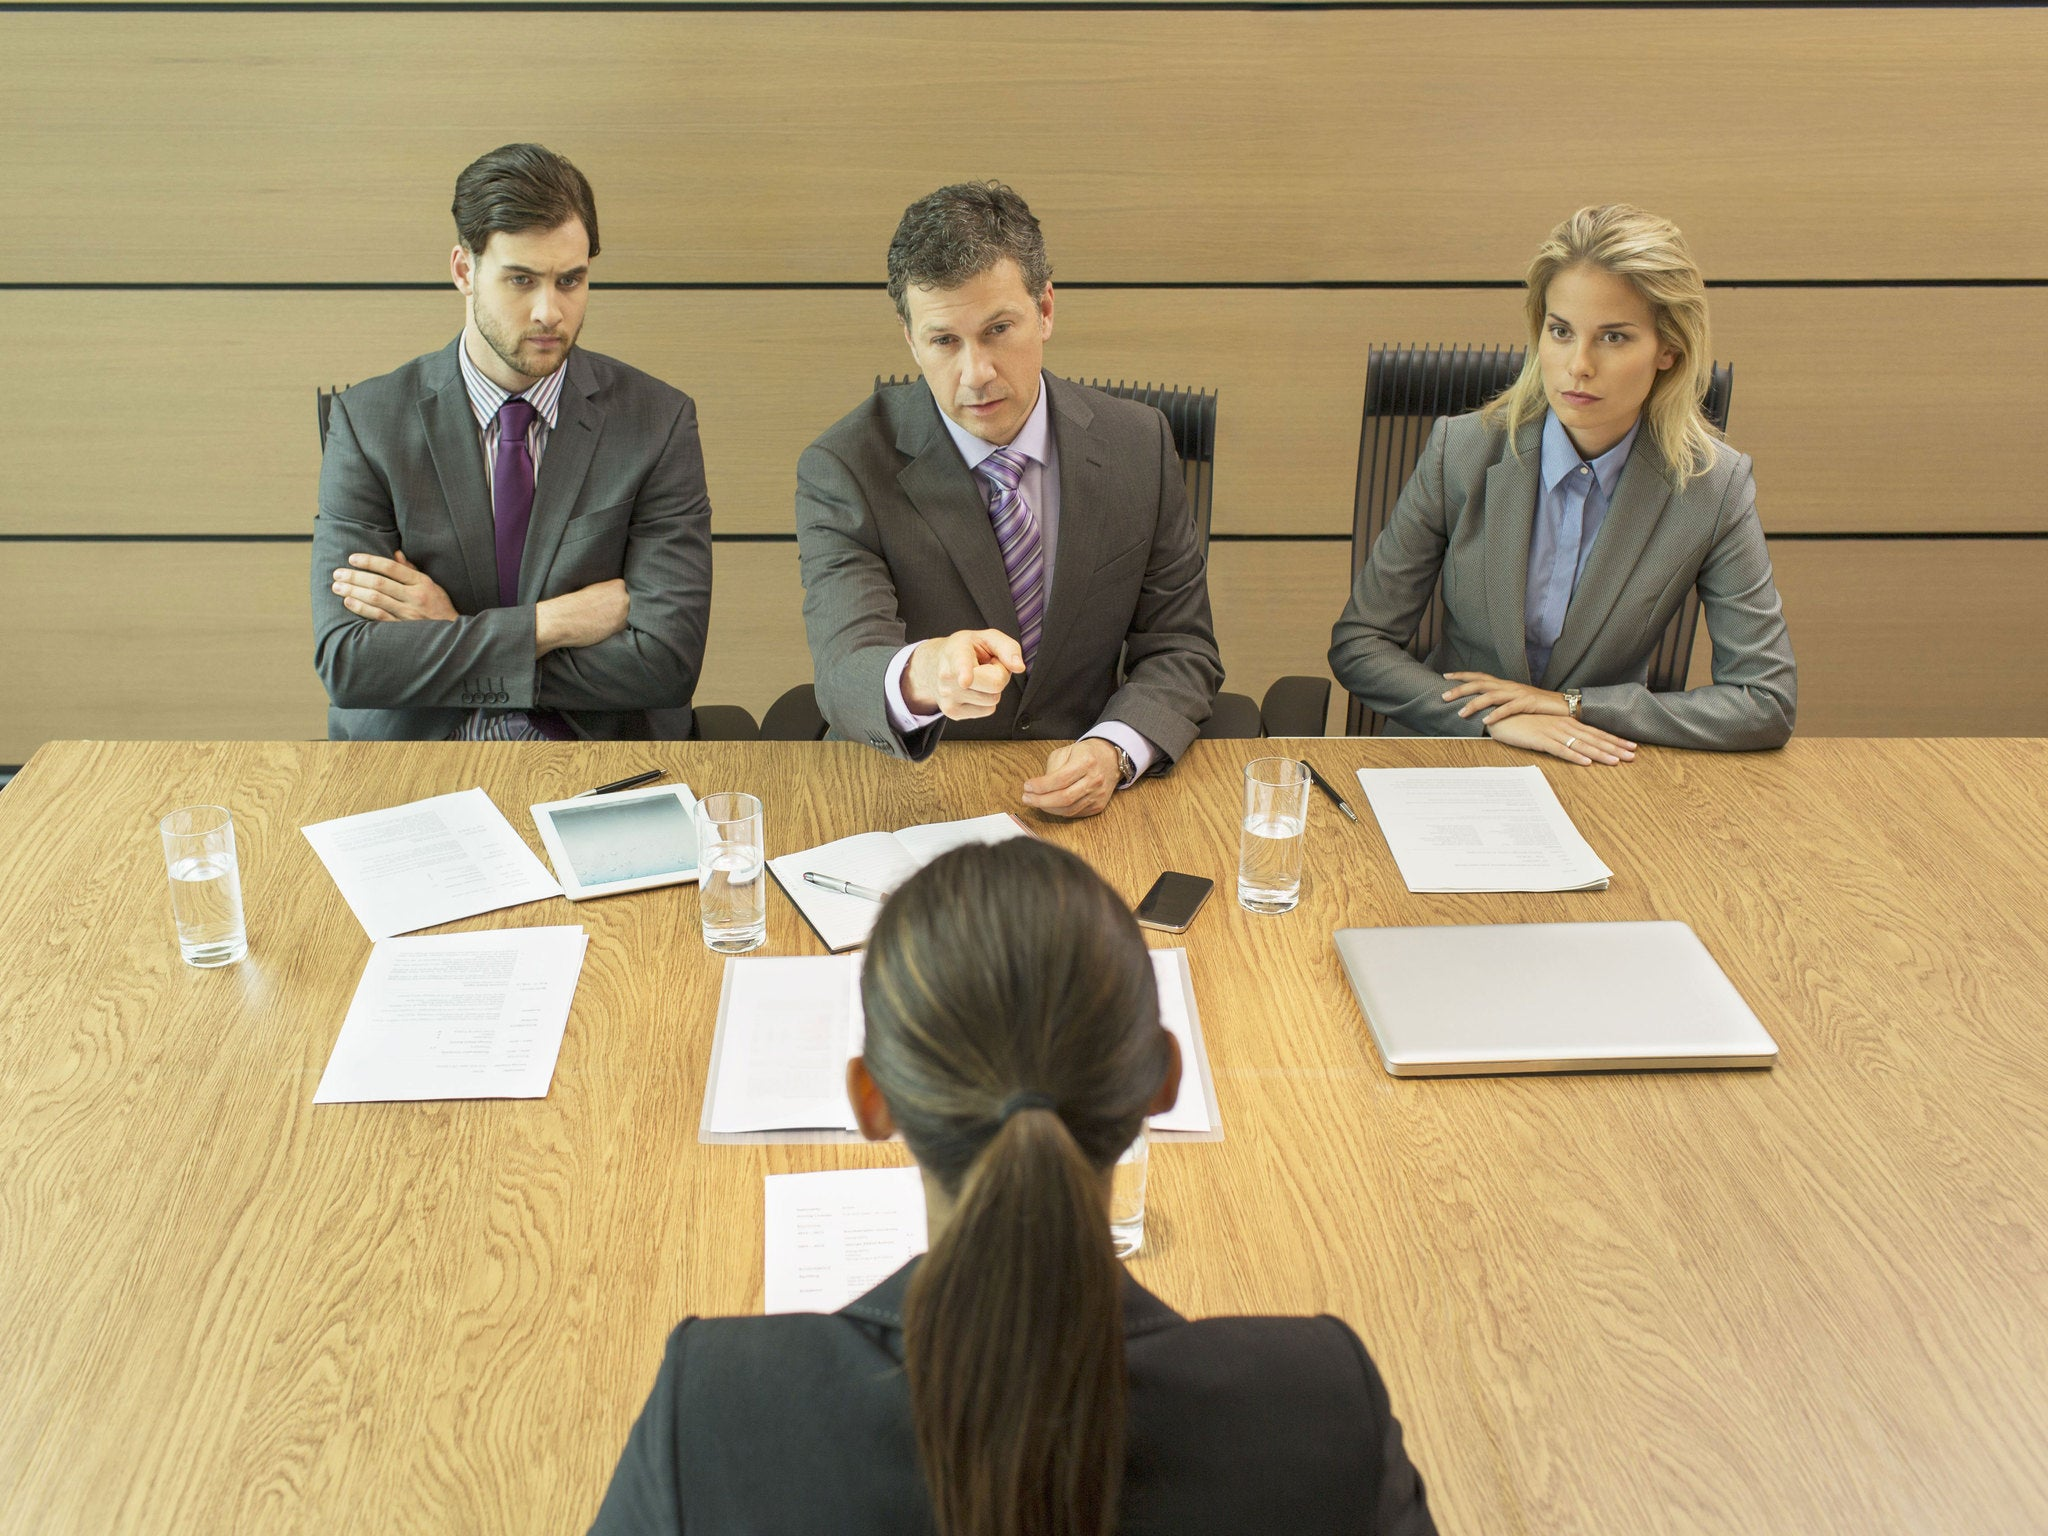 17 signs your job interview is going badly the independent